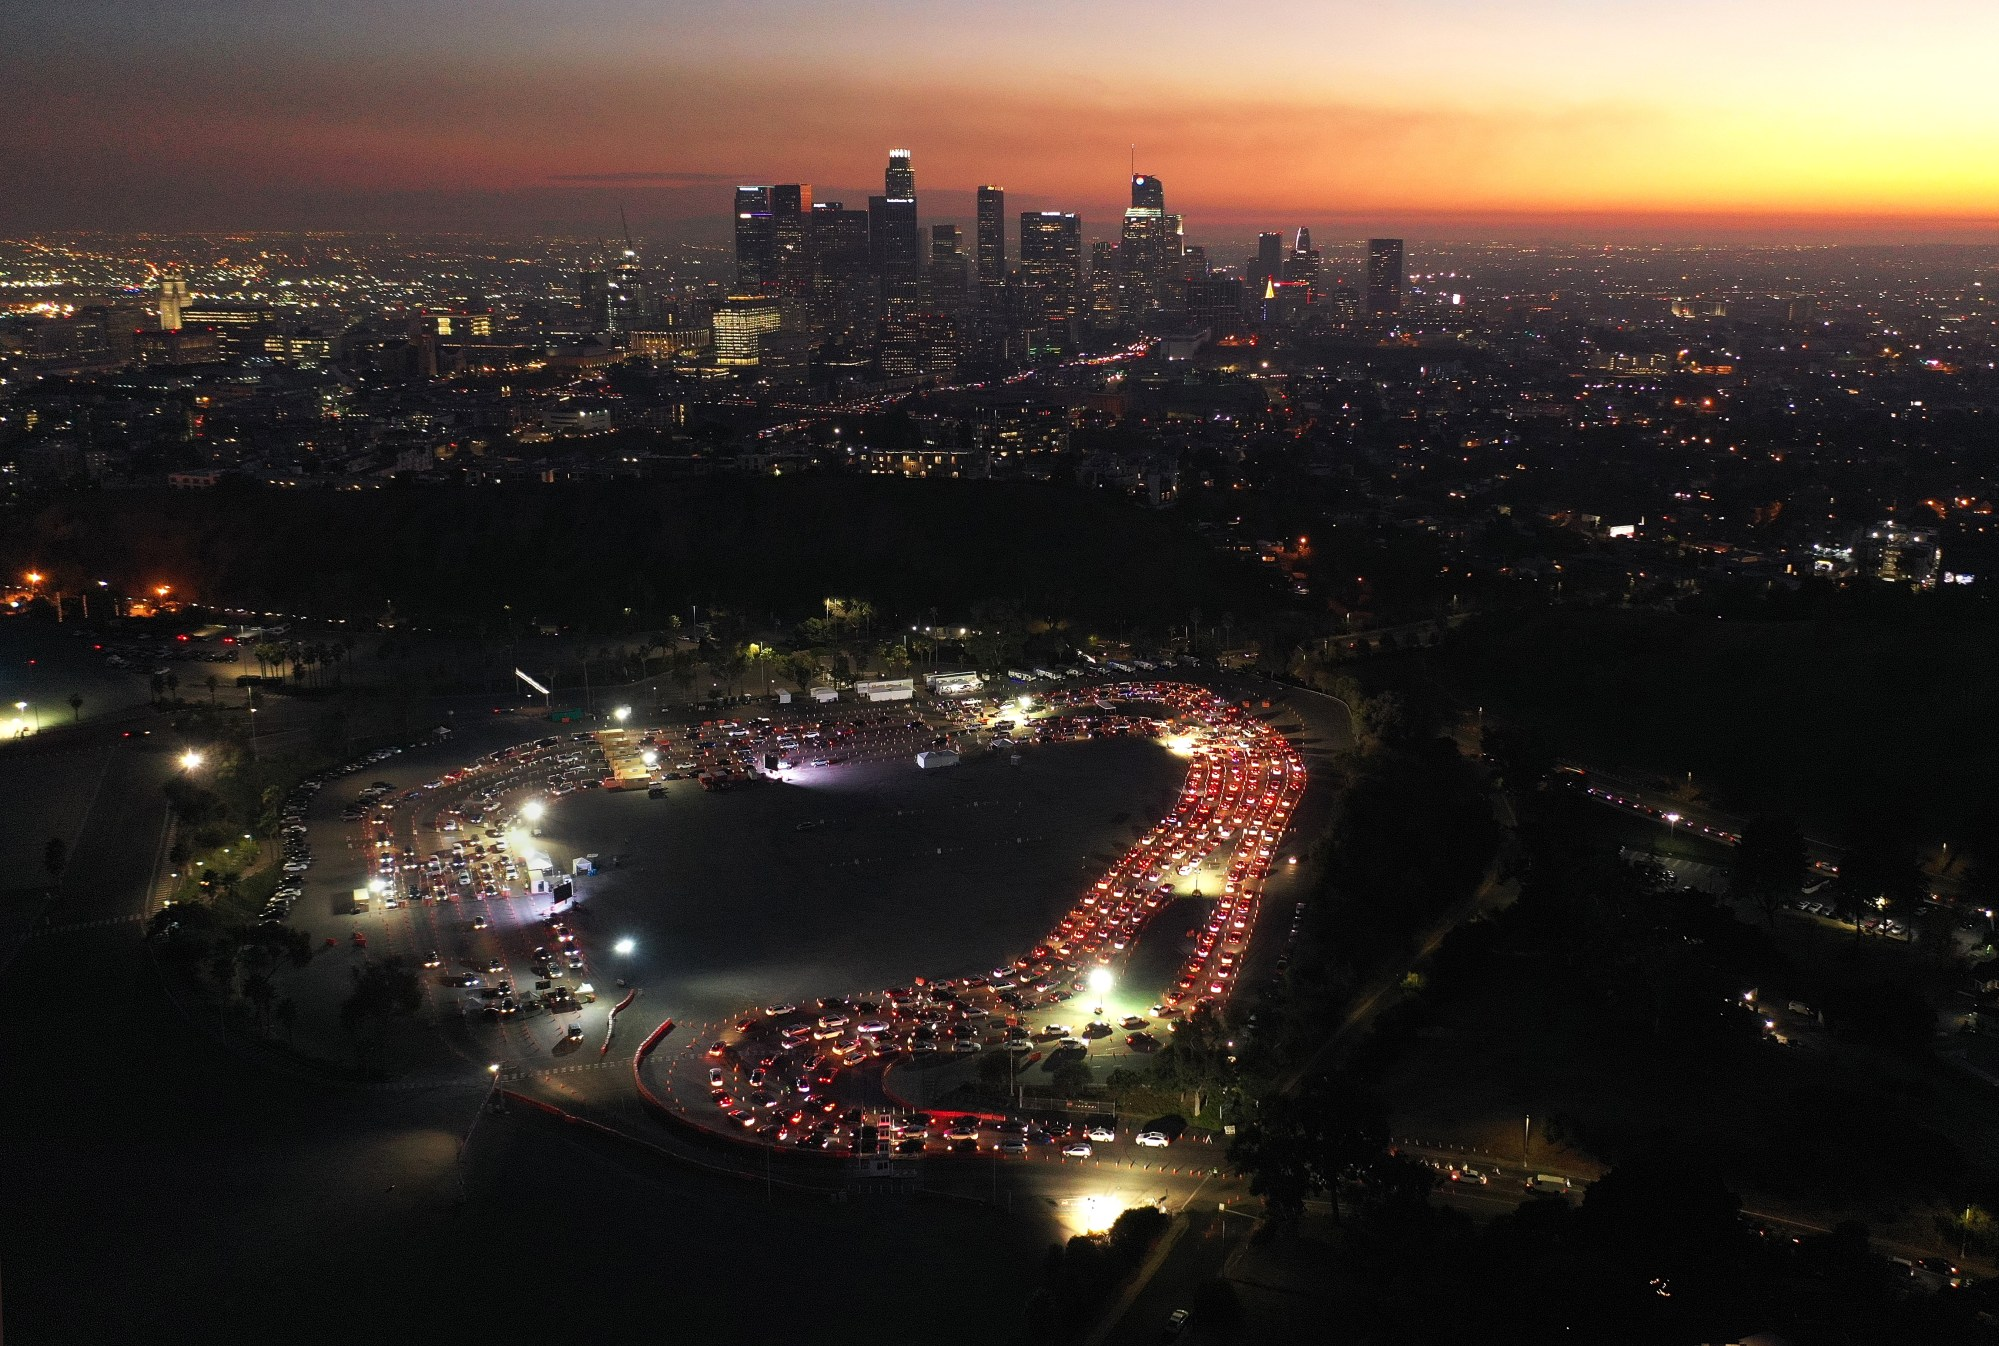 In an aerial view from a drone, cars are lined up at Dodger Stadium for COVID-19 testing as dusk falls over downtown Los Angeles on Dec. 2, 2020. (Mario Tama / Getty Images)